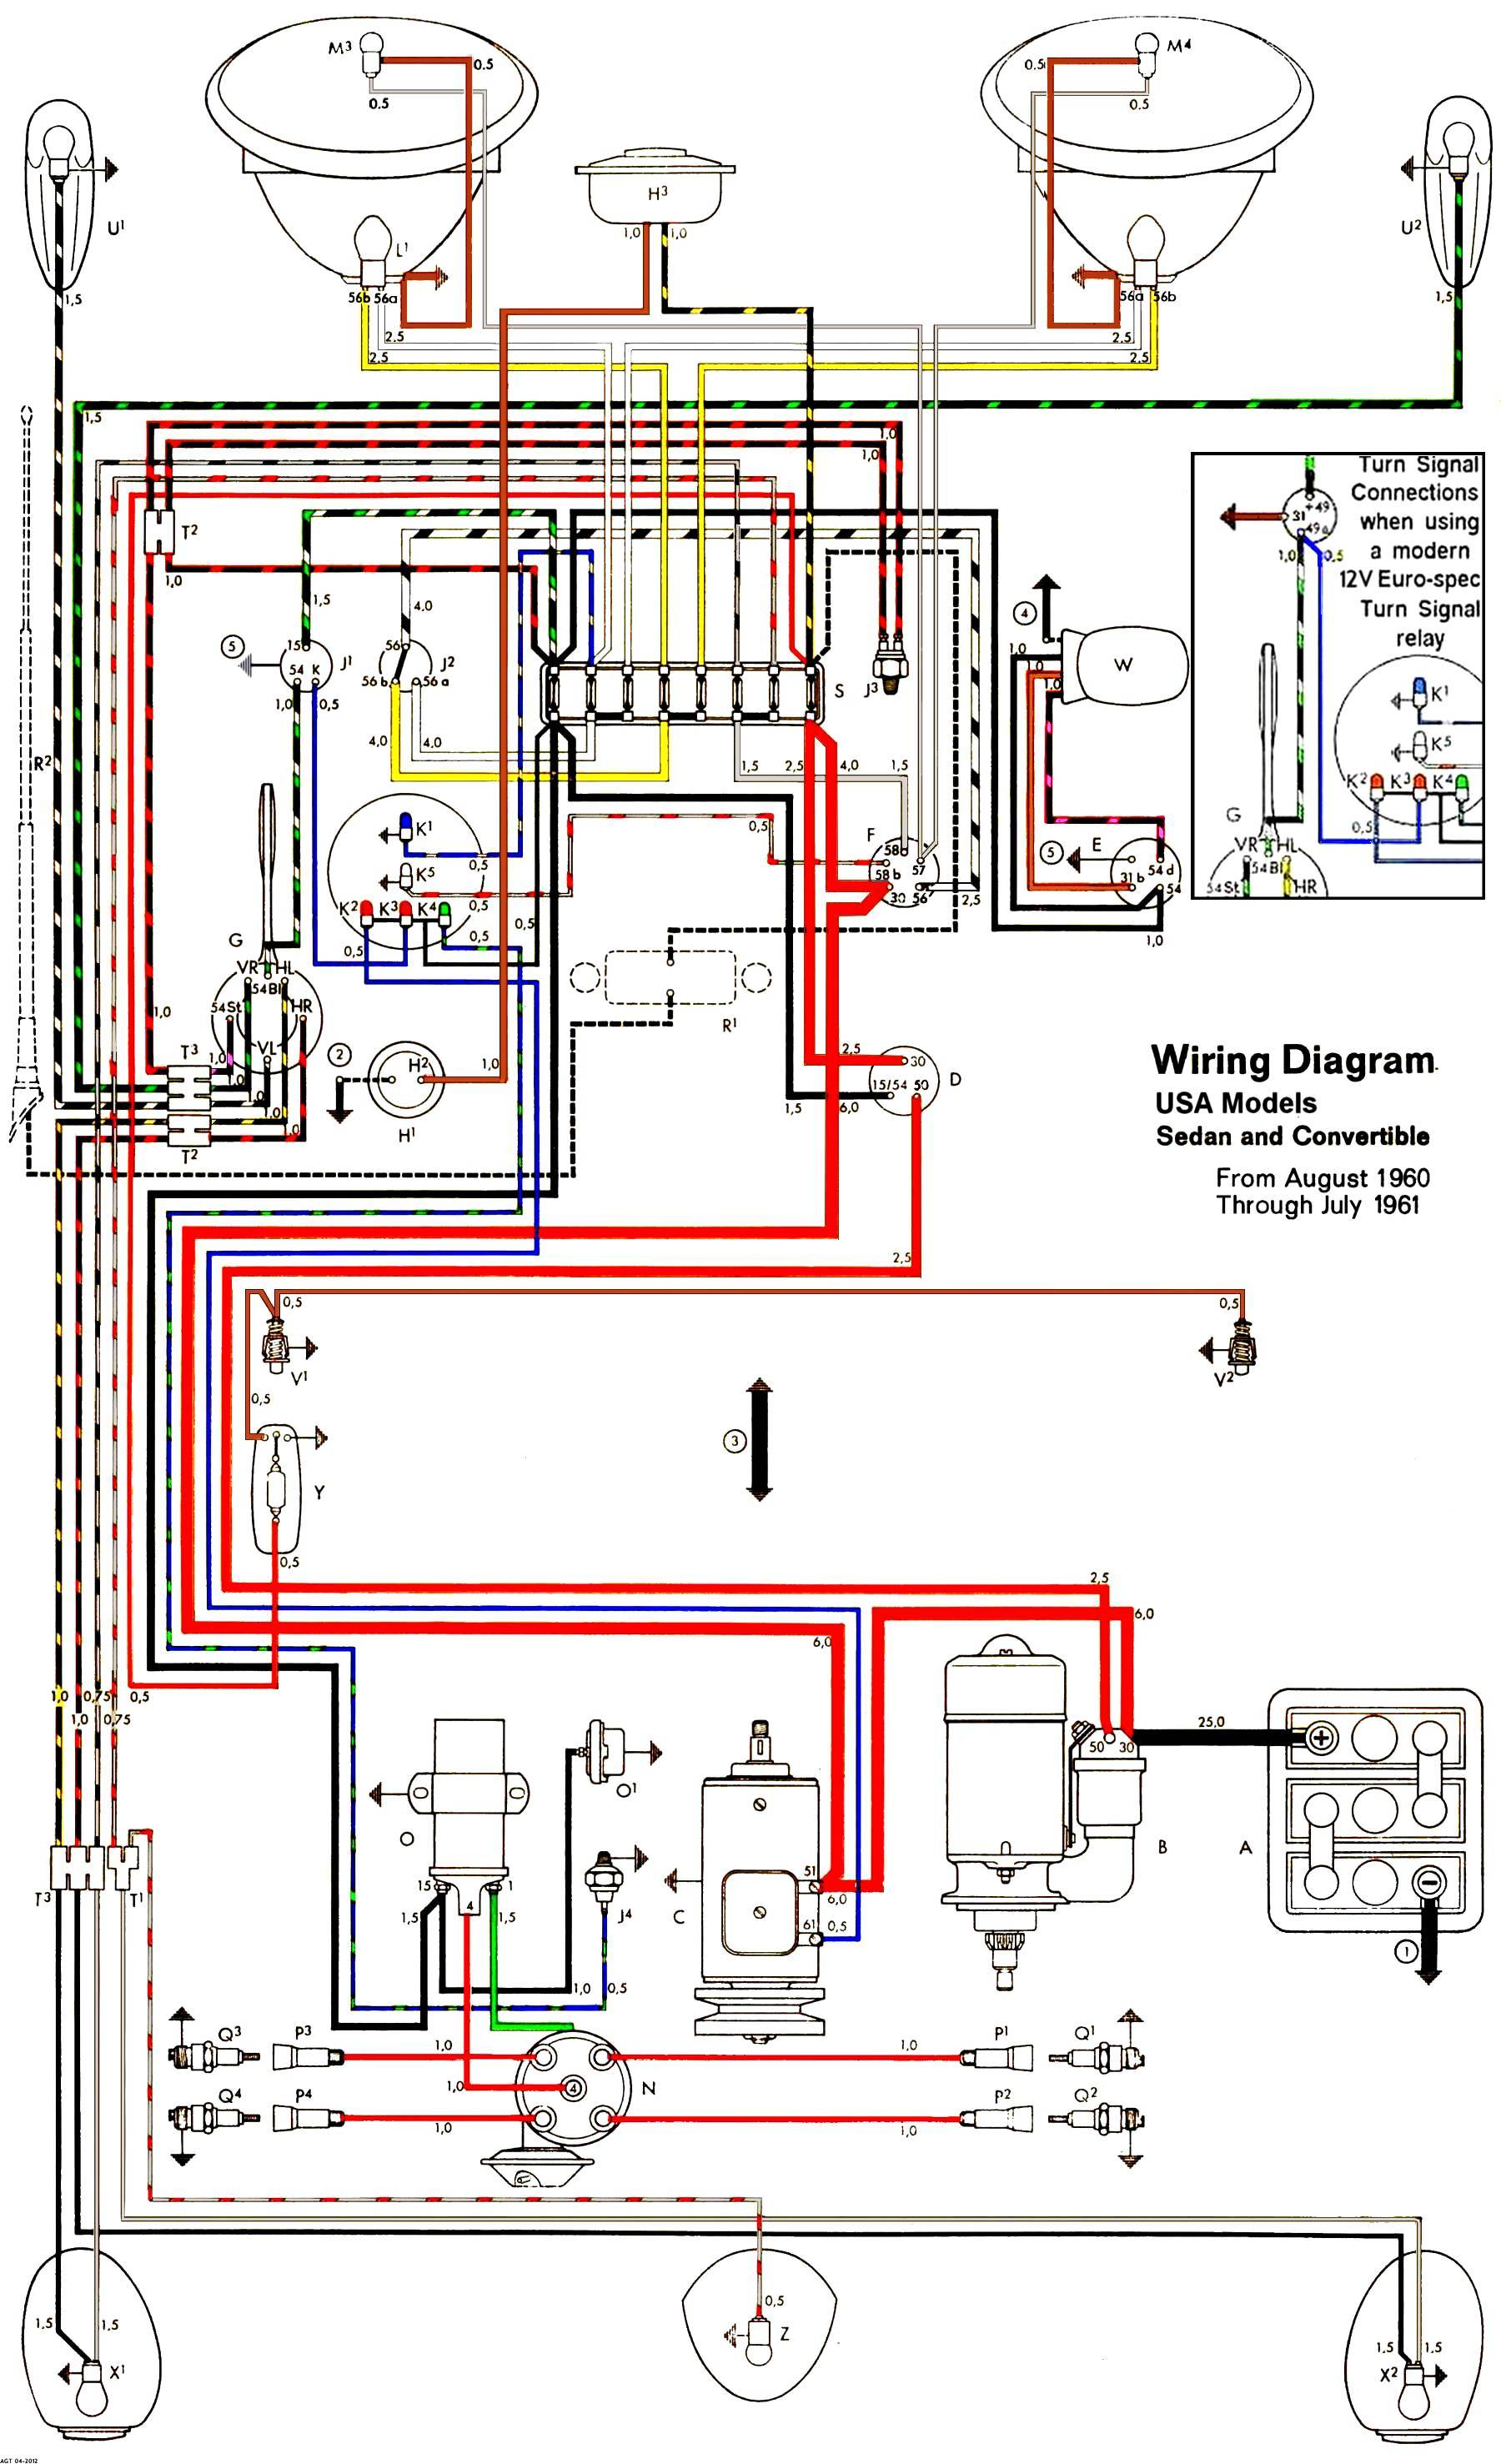 [DIAGRAM_09CH]  3B617 Vw Beetle Wiper Wiring Diagram | Wiring Library | 2007 Vw New Beetle Wiper Motor Wiring Diagram |  | Wiring Library